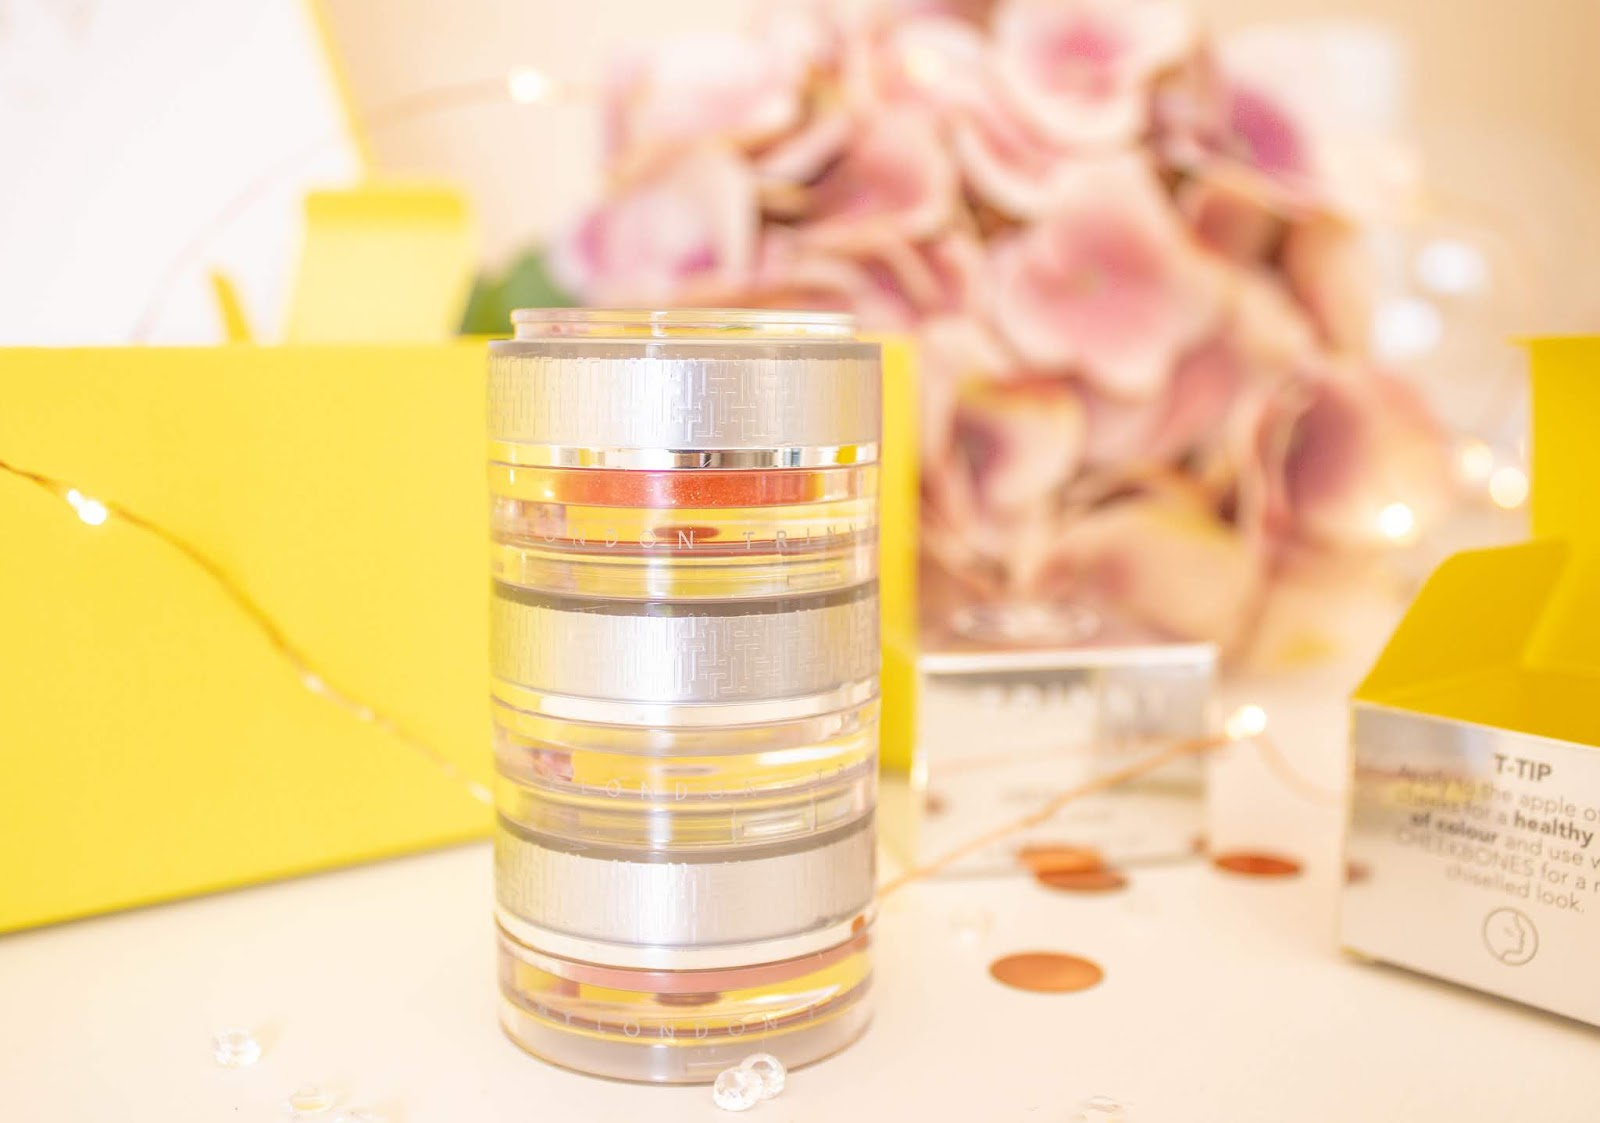 Discovering Trinny London: A Fuss Free Approach To Natural Makeup - The Stack